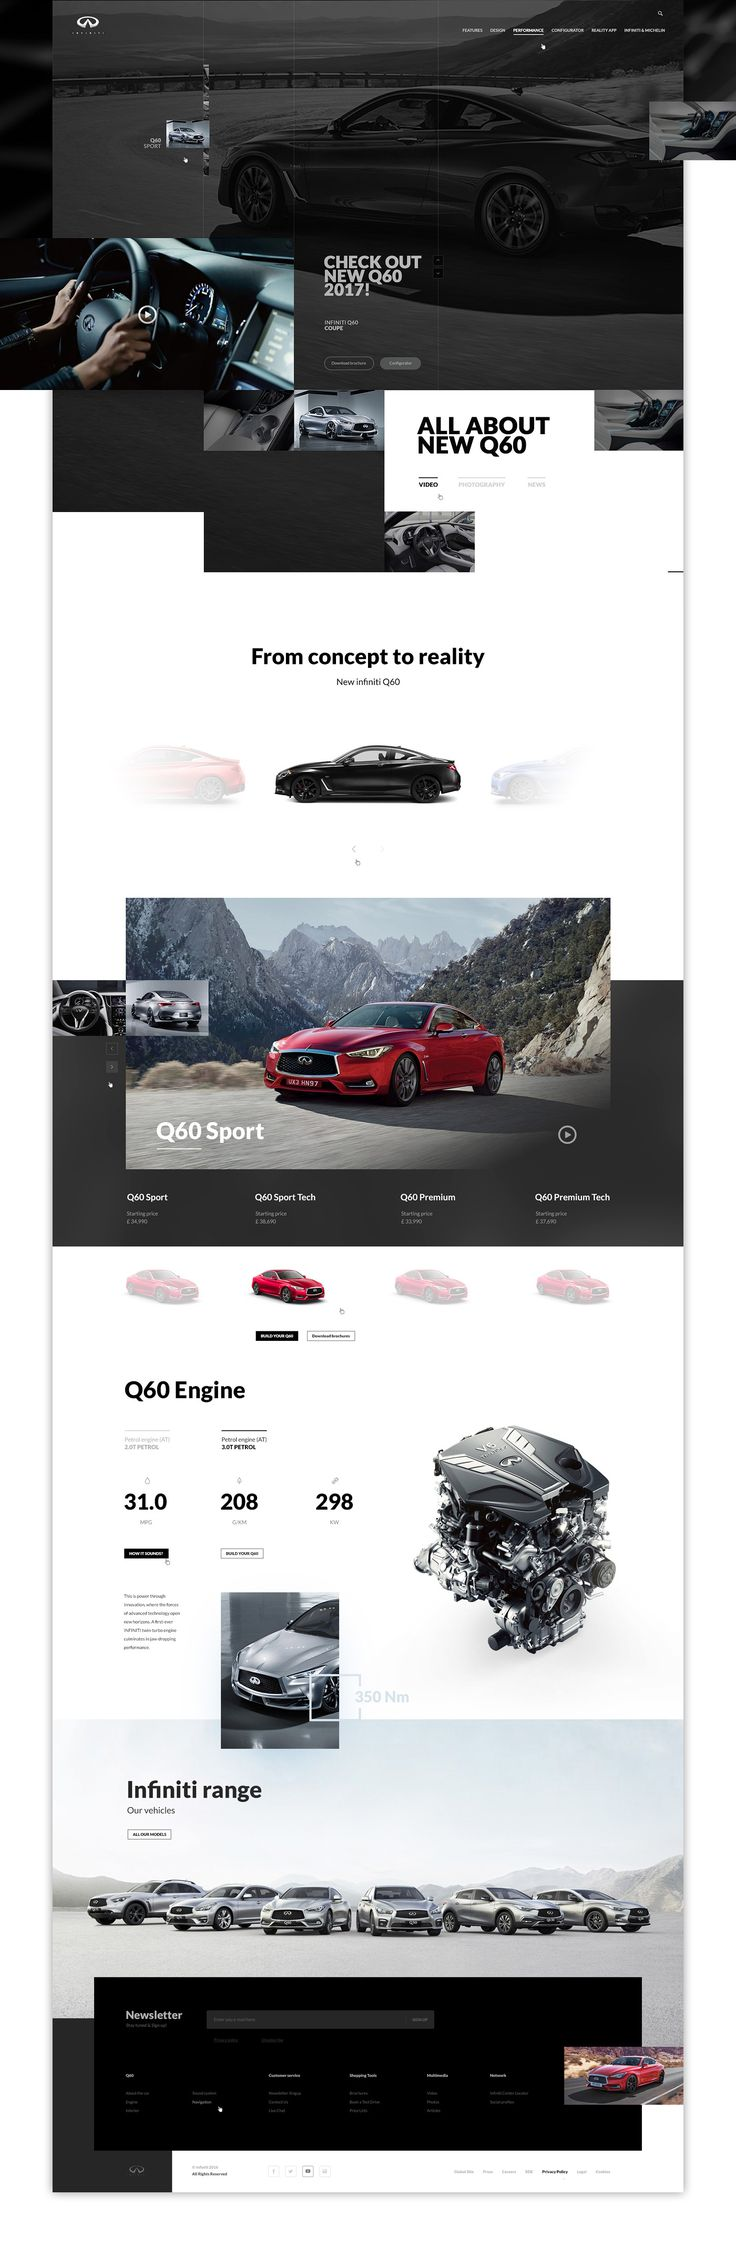 As a huge fan of infiniti cars I decided to create (as a private project) a website concept for them.